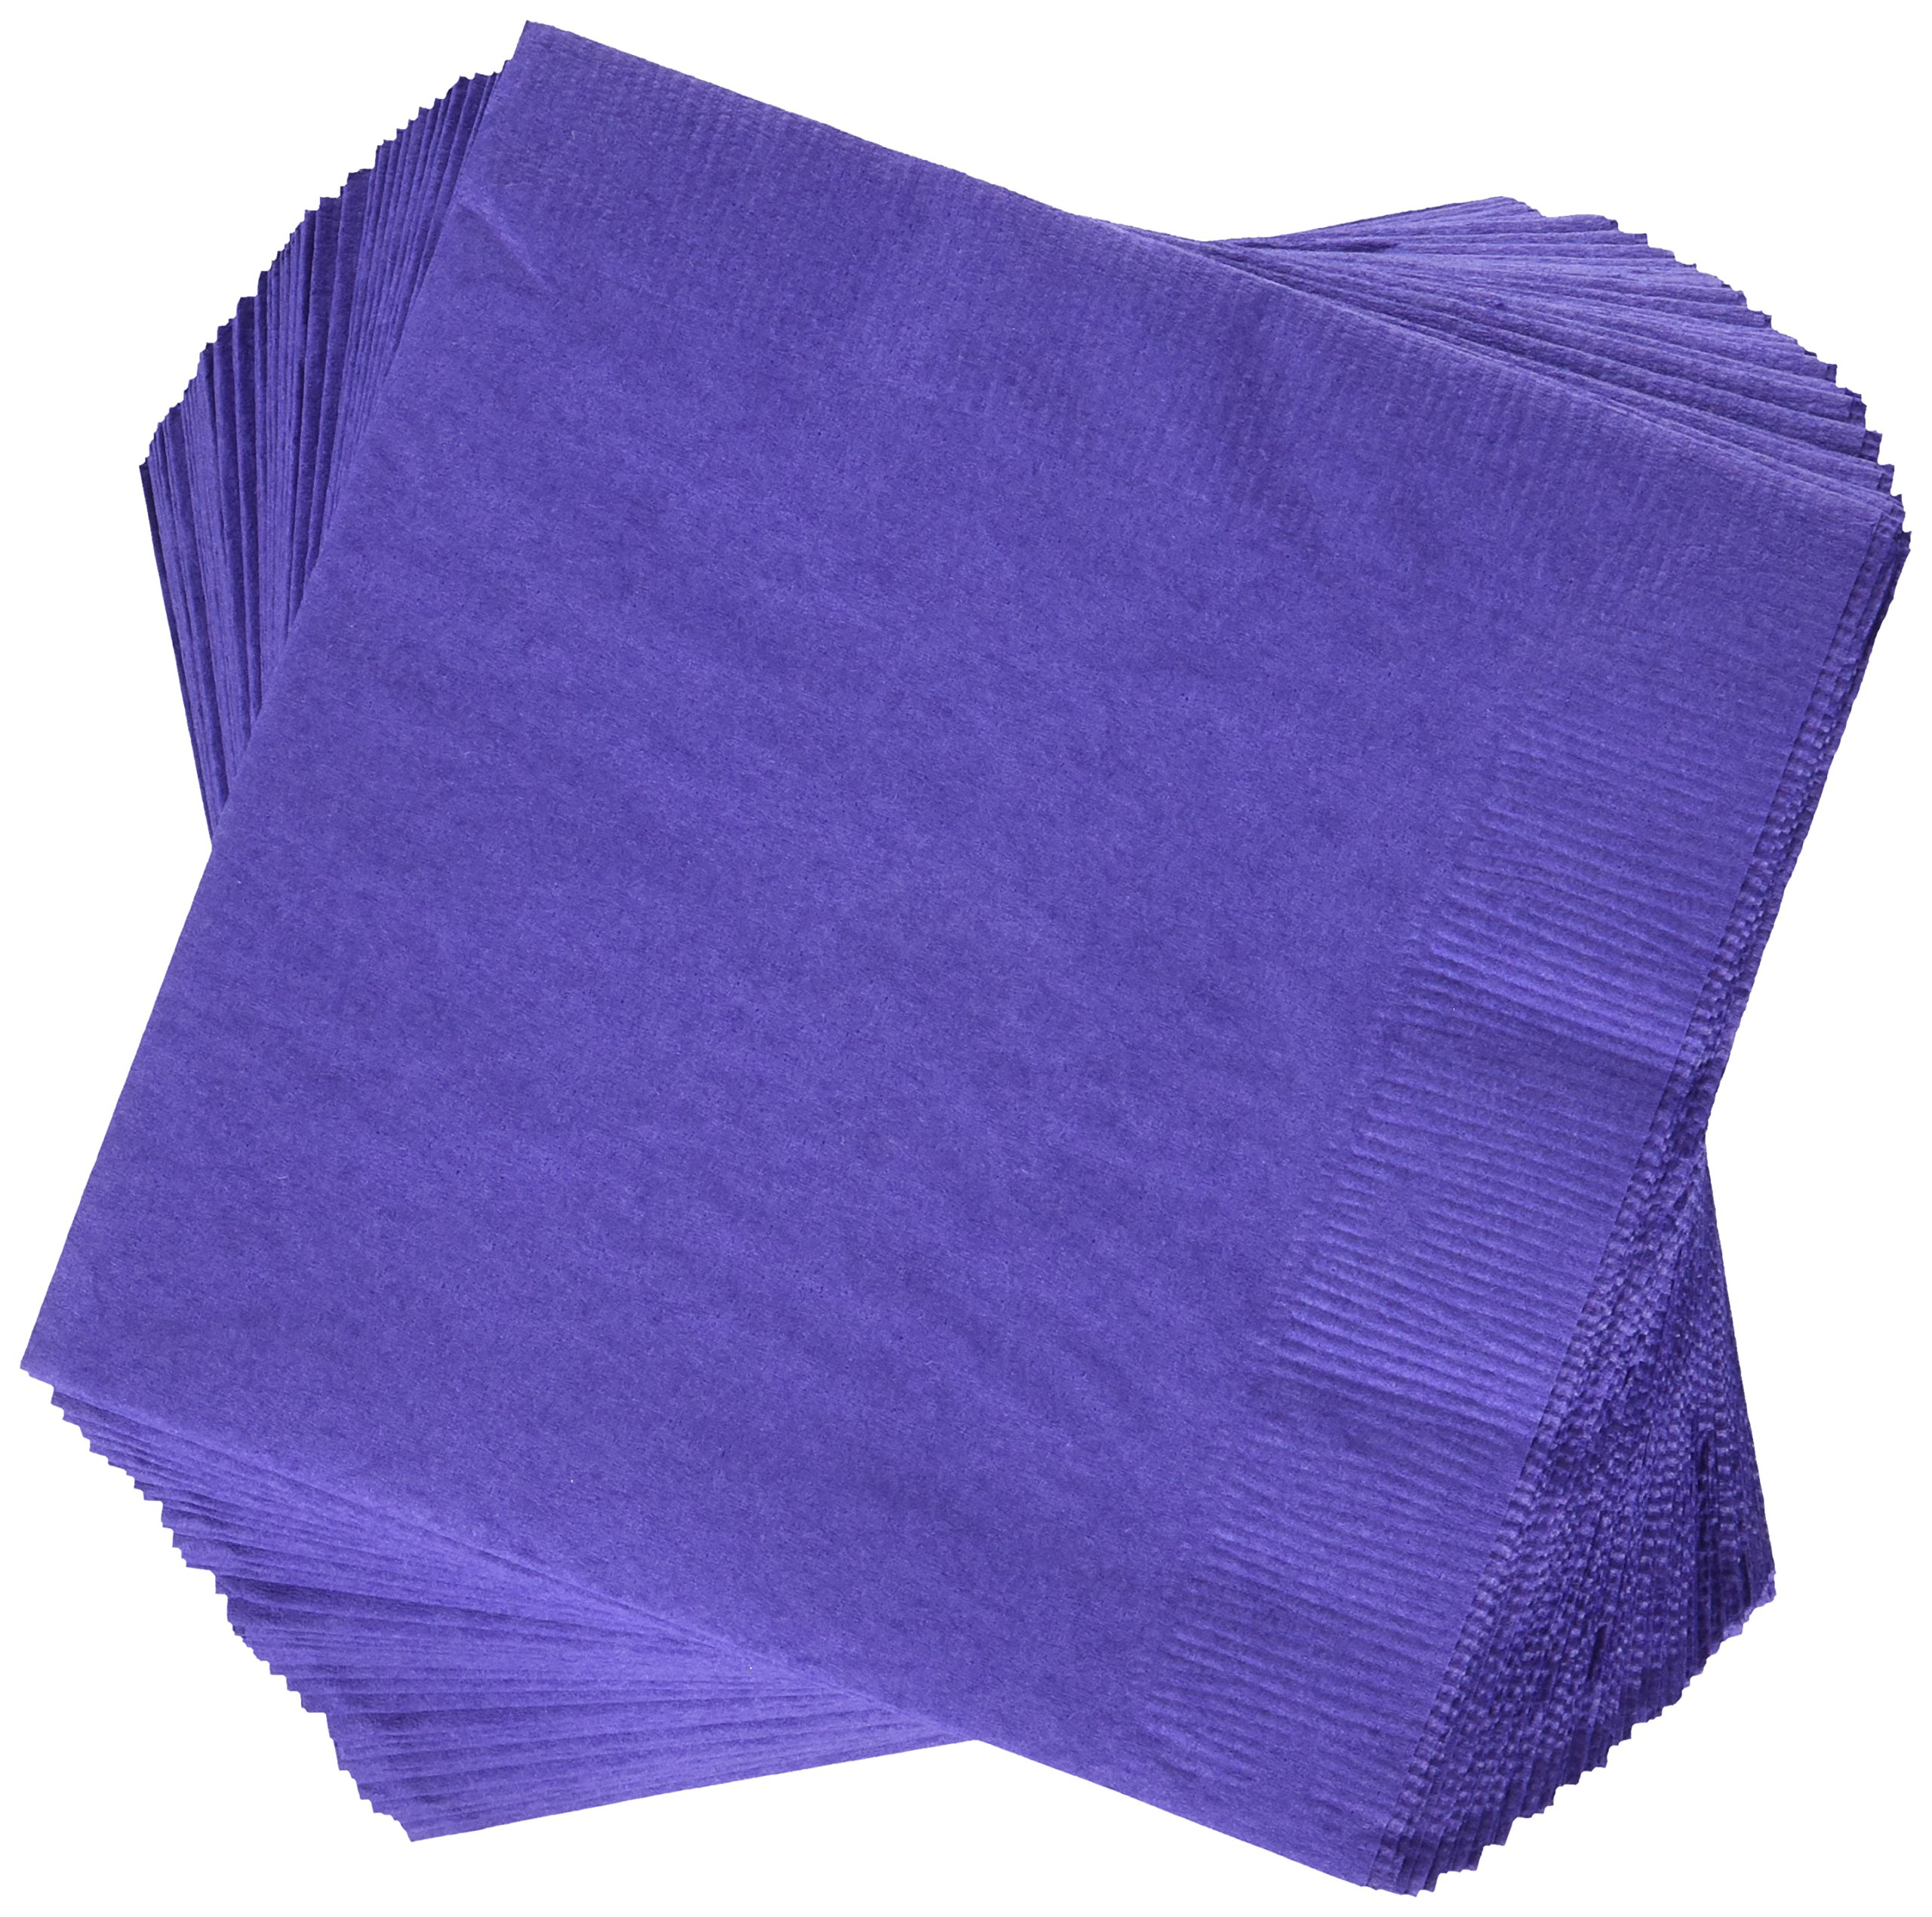 Creative Converting Paper Napkins, 3-Ply Beverage Size, Purple Color, 50-Count Packages (Pack of 5)